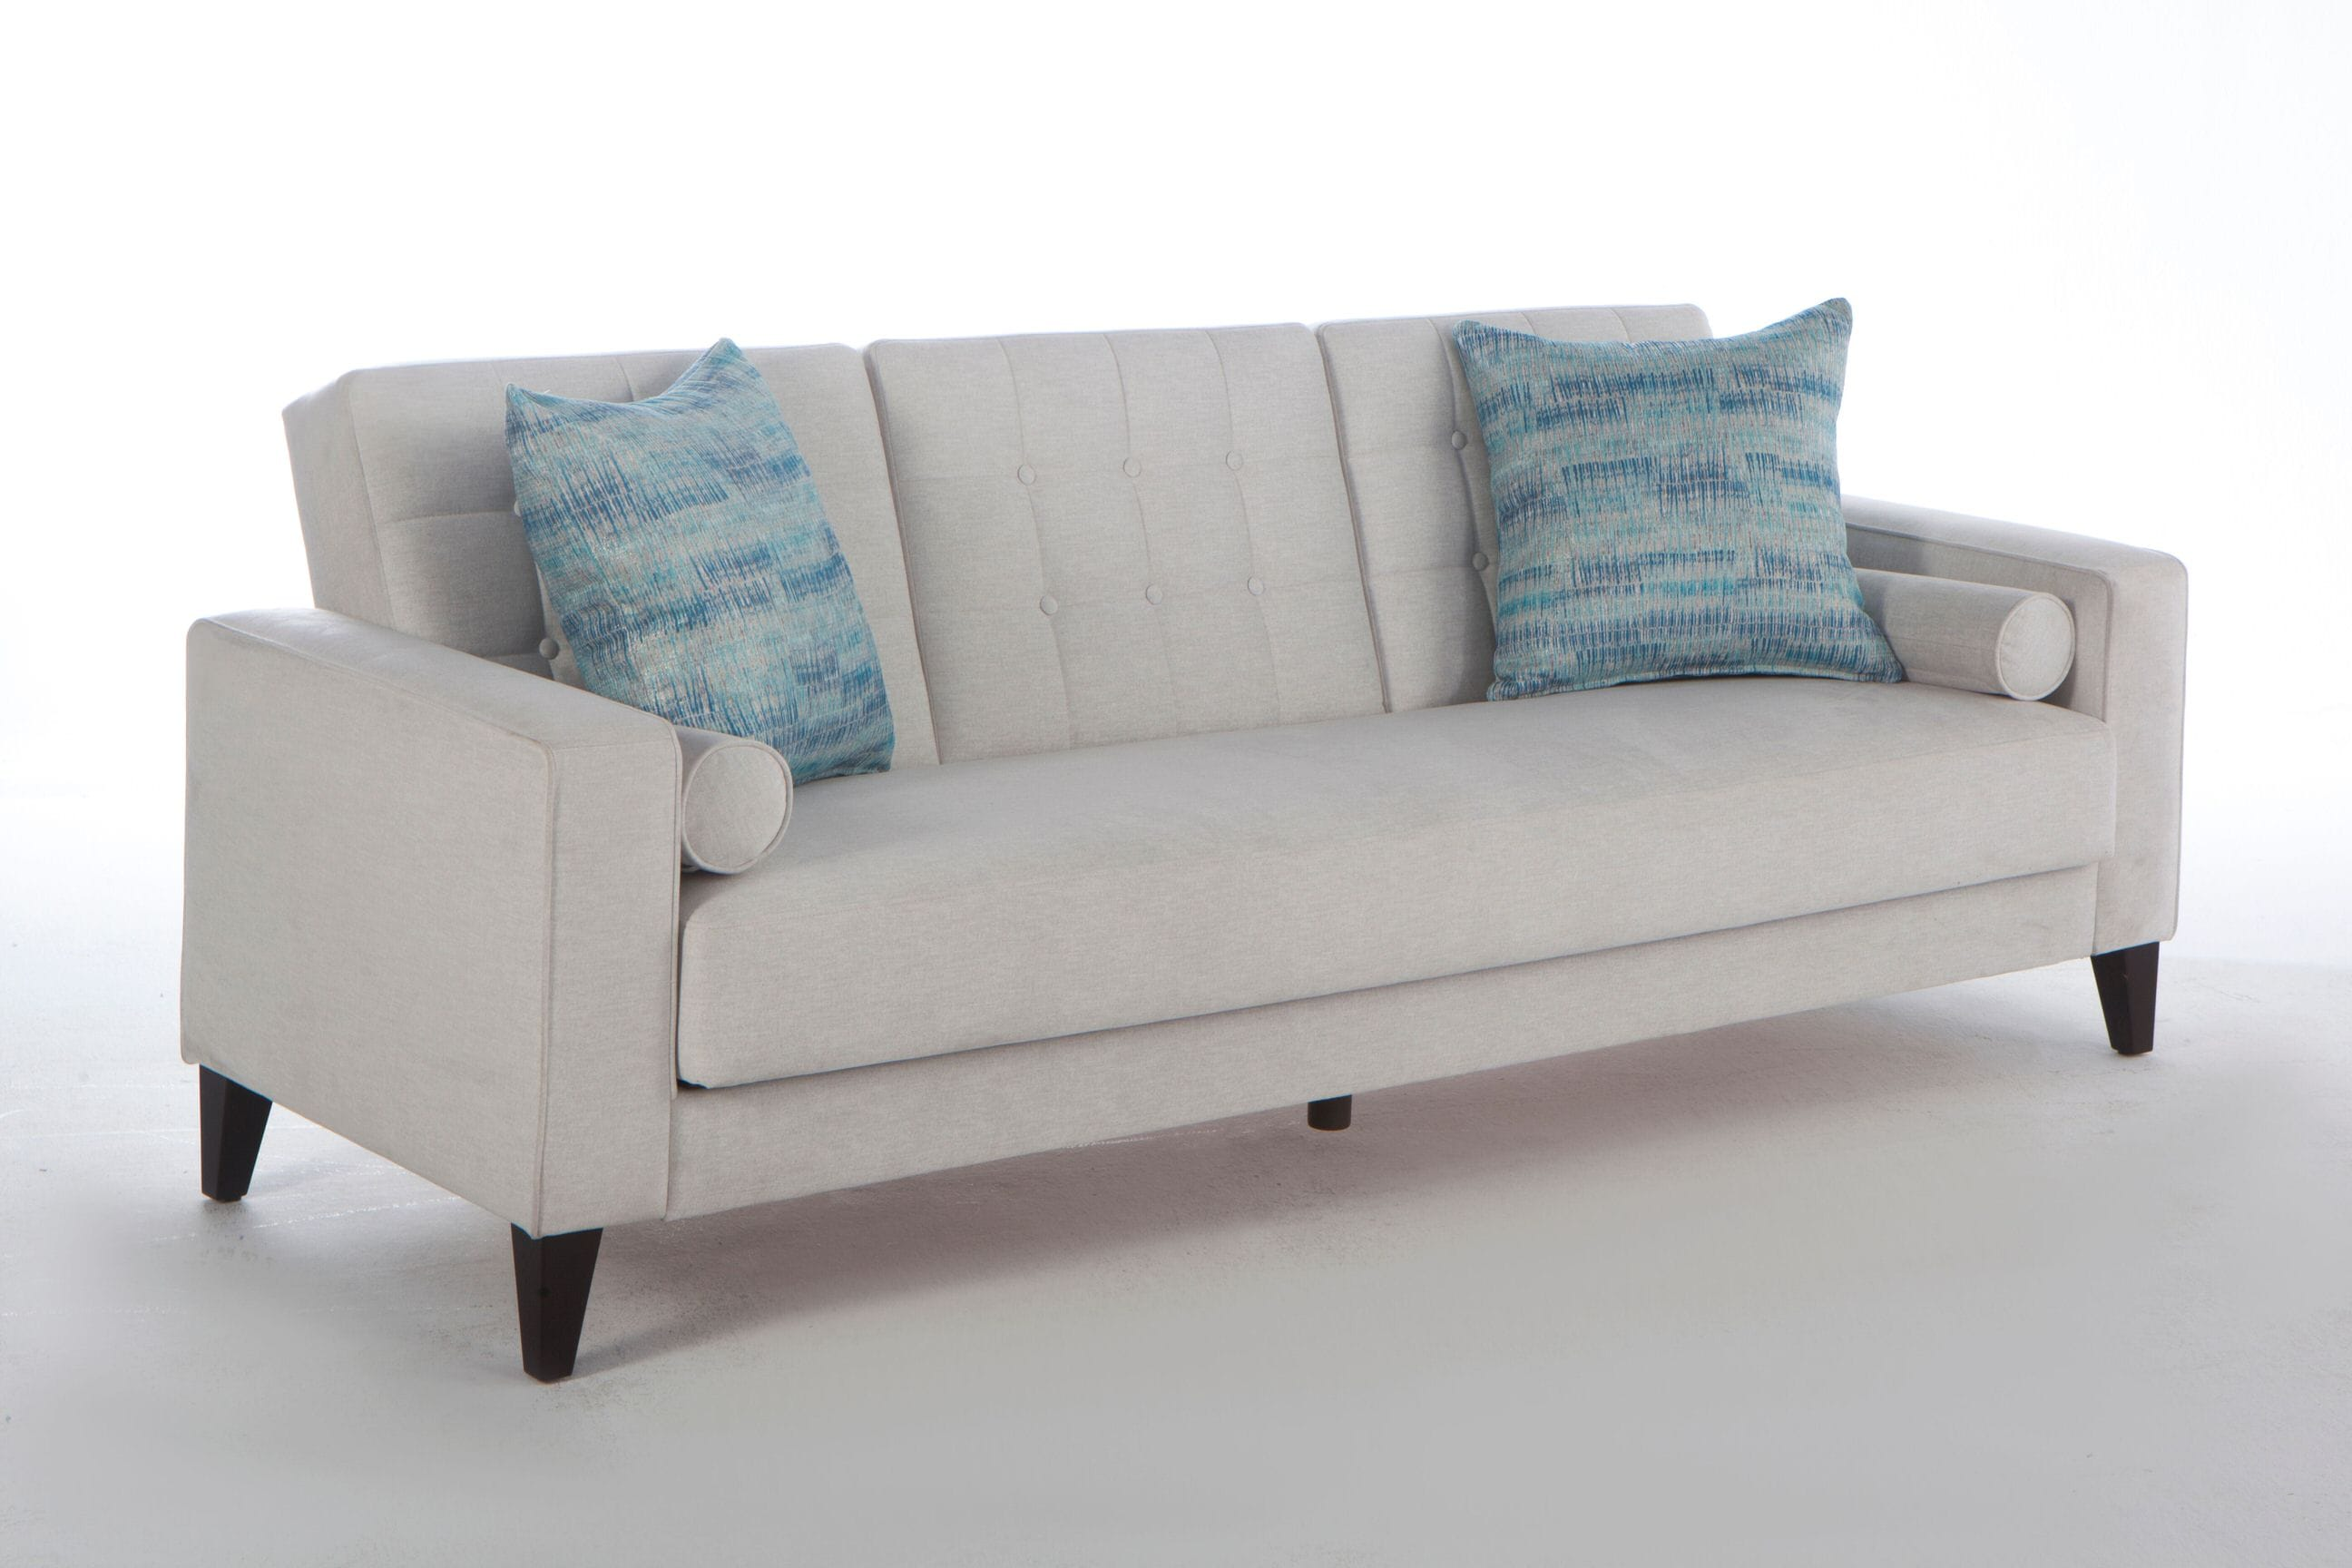 Admirable Milton Perla Ekru Convertible Sofa Bed By Istikbal Furniture Pabps2019 Chair Design Images Pabps2019Com